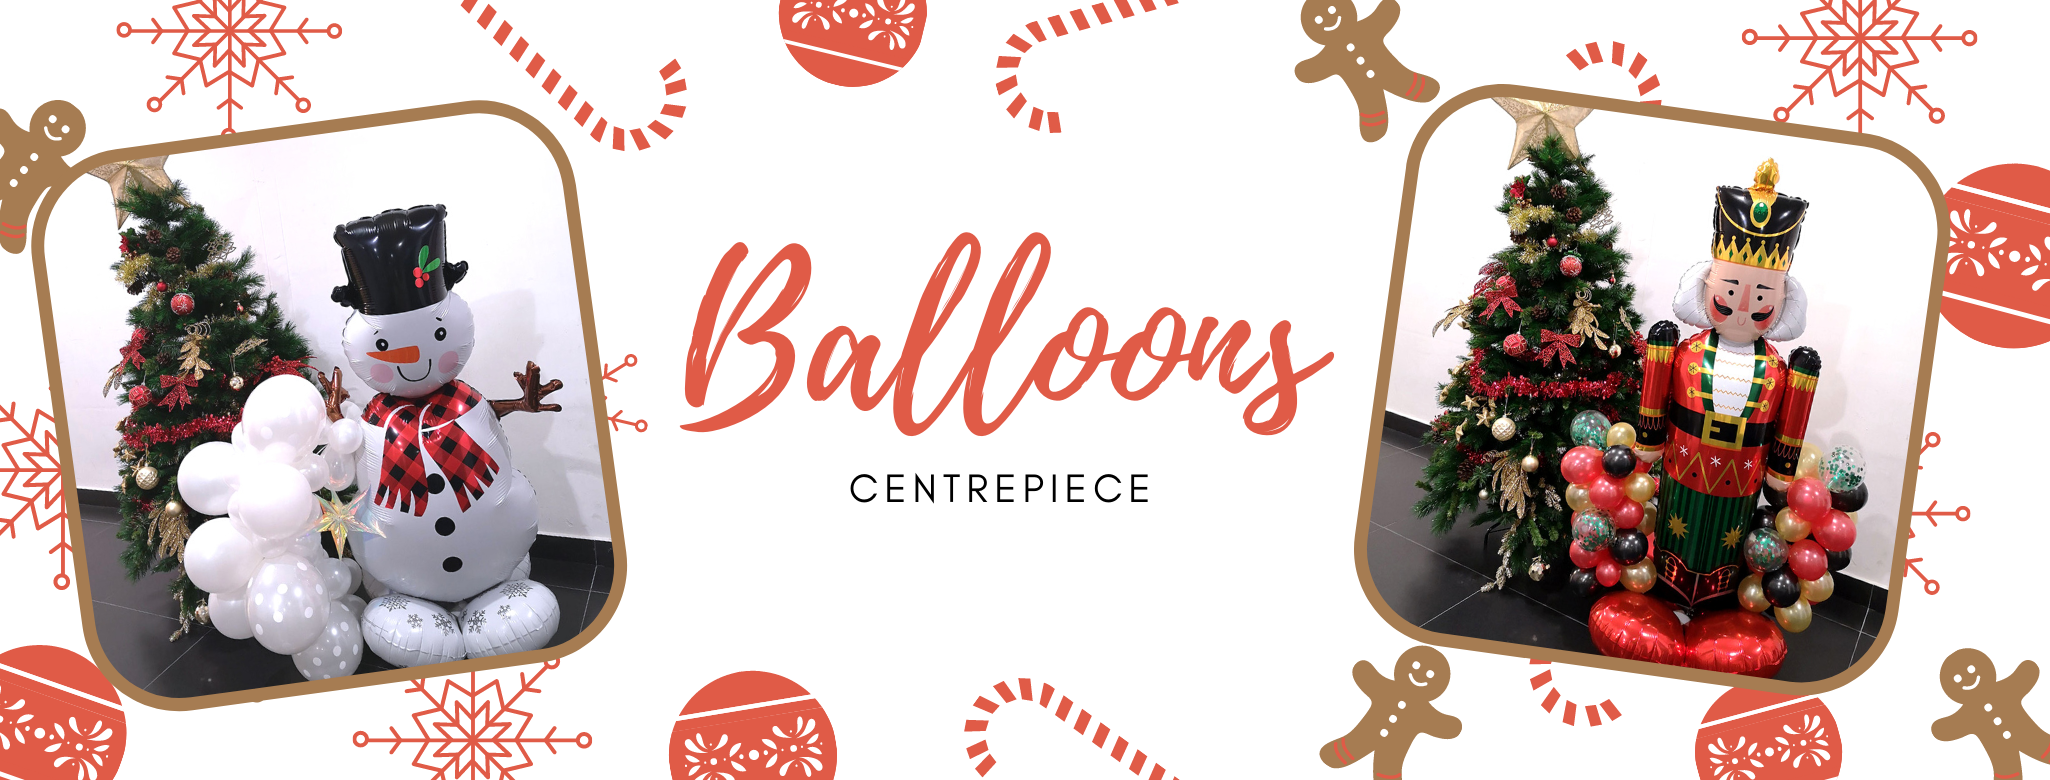 Christmas Balloons Centrepiece Delivery islandwide Singapore